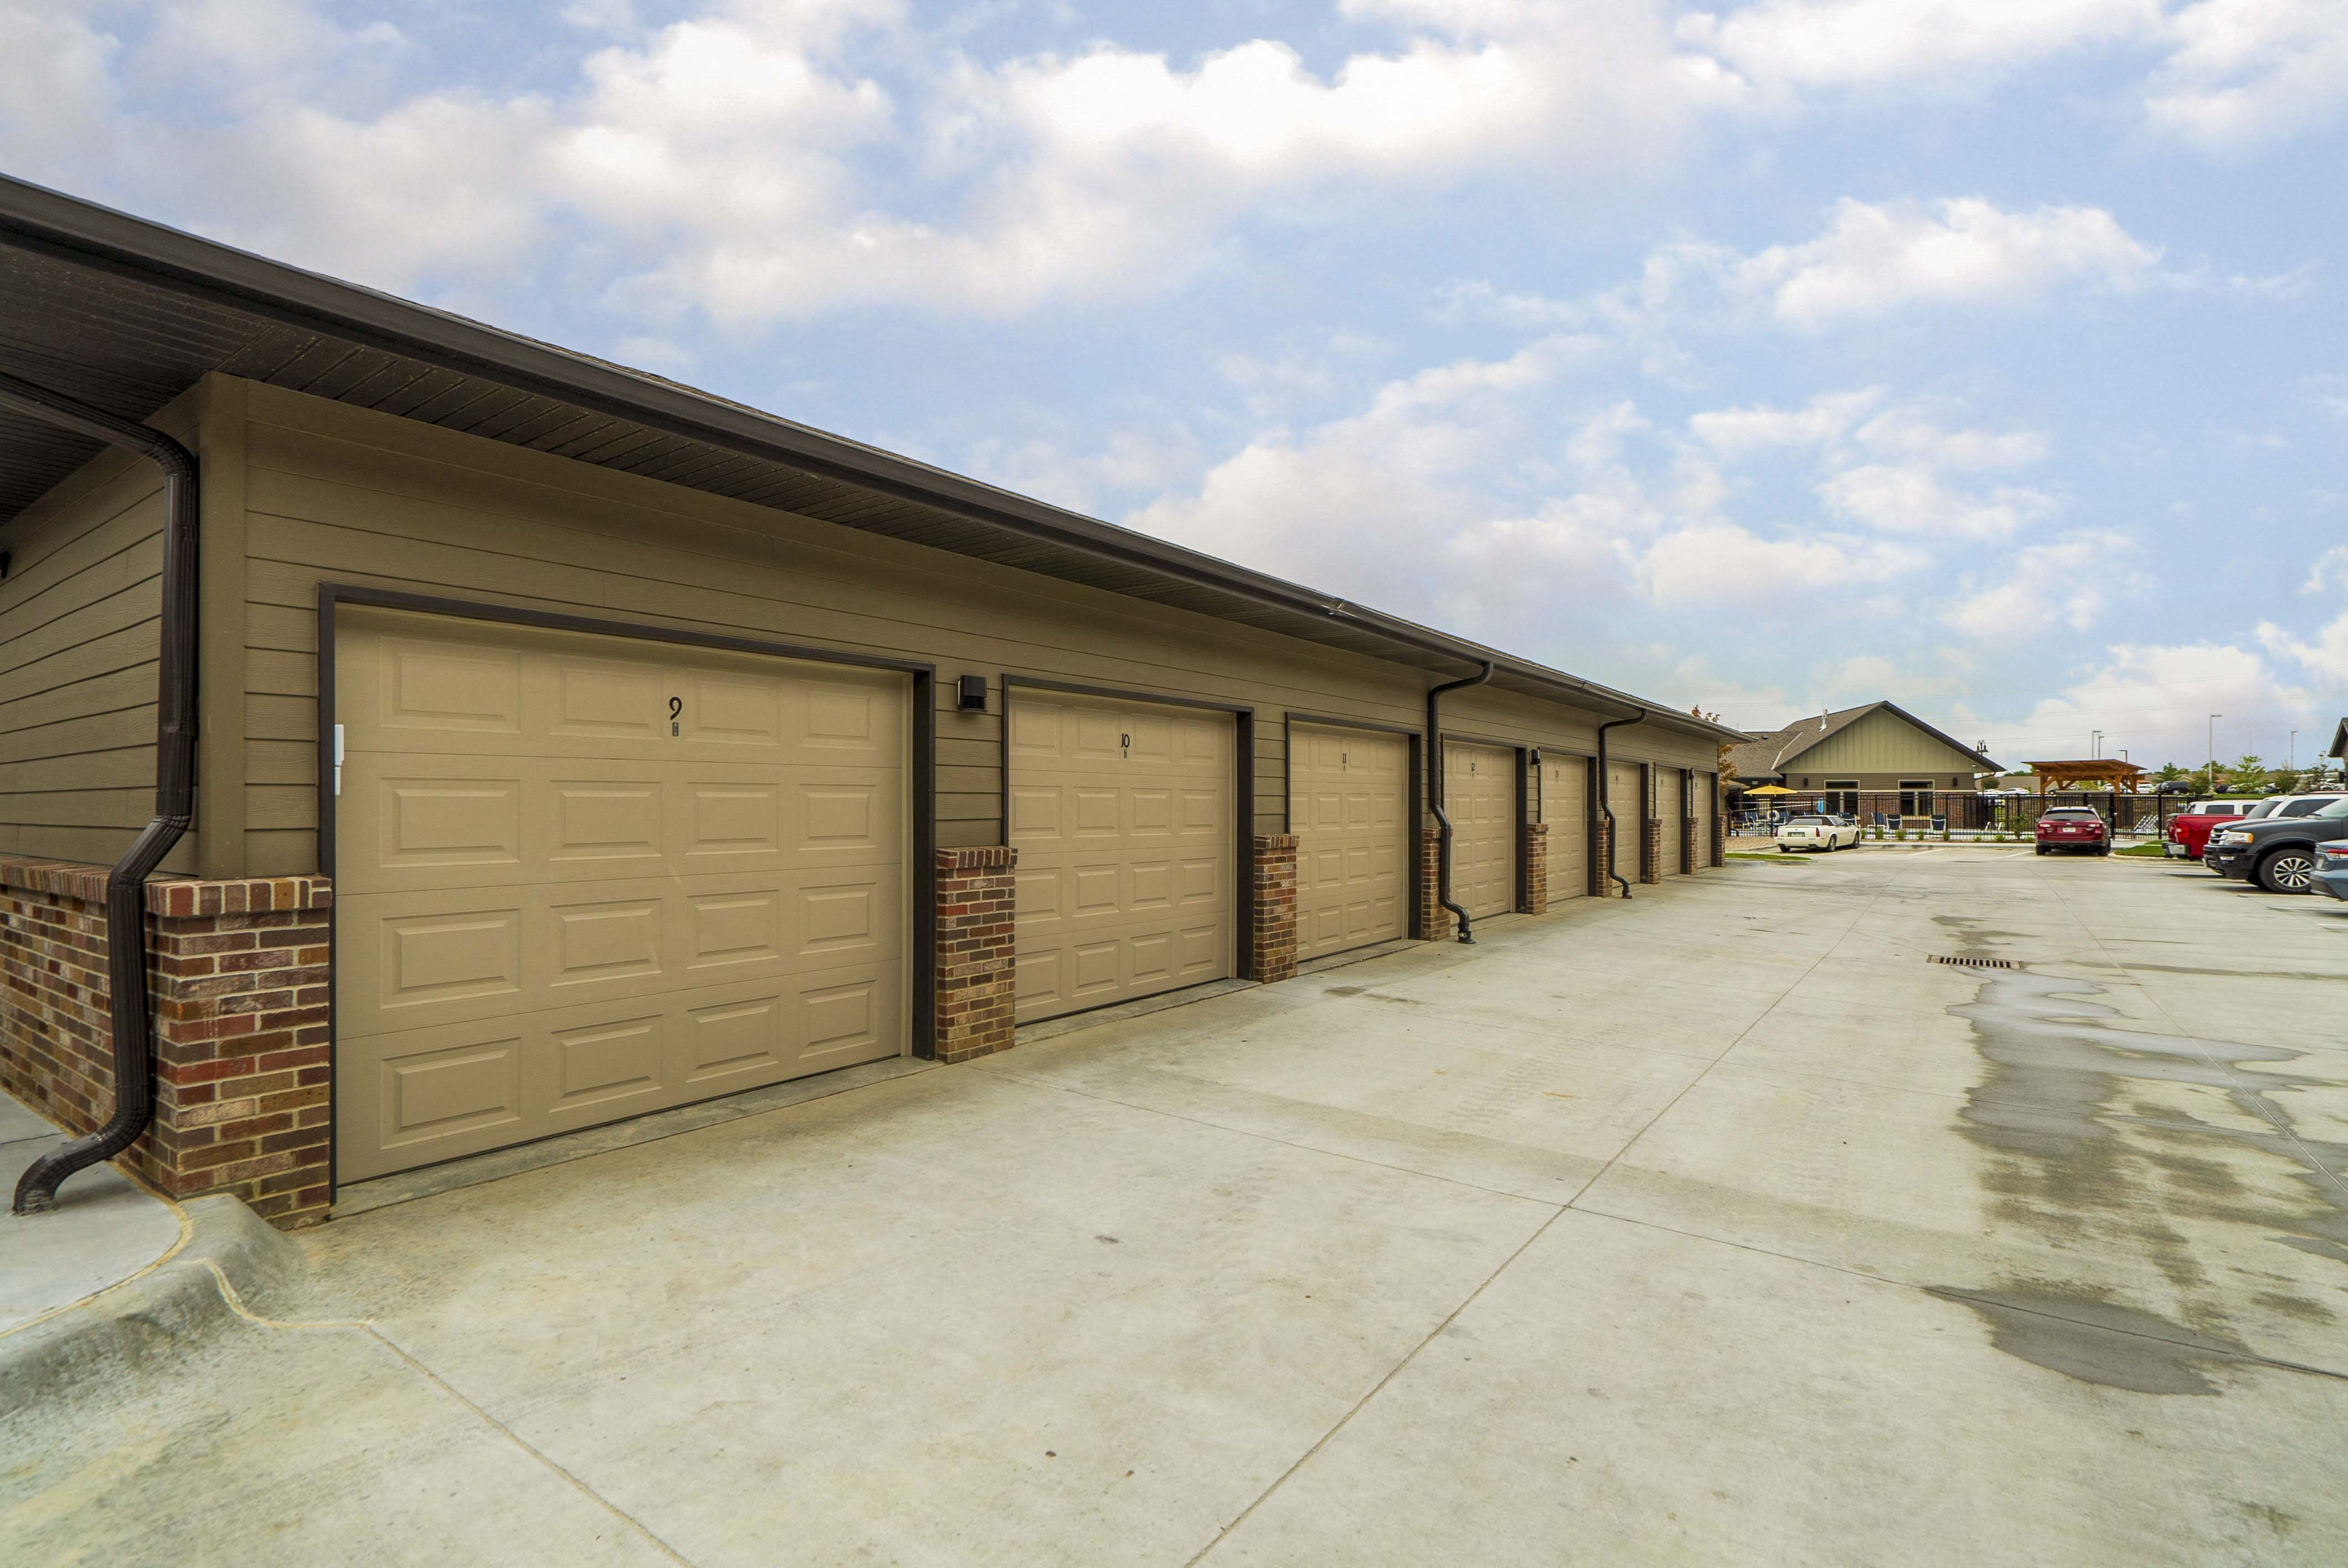 Detached garage parking available at WH Flats new luxury apartments in south Lincoln 68516